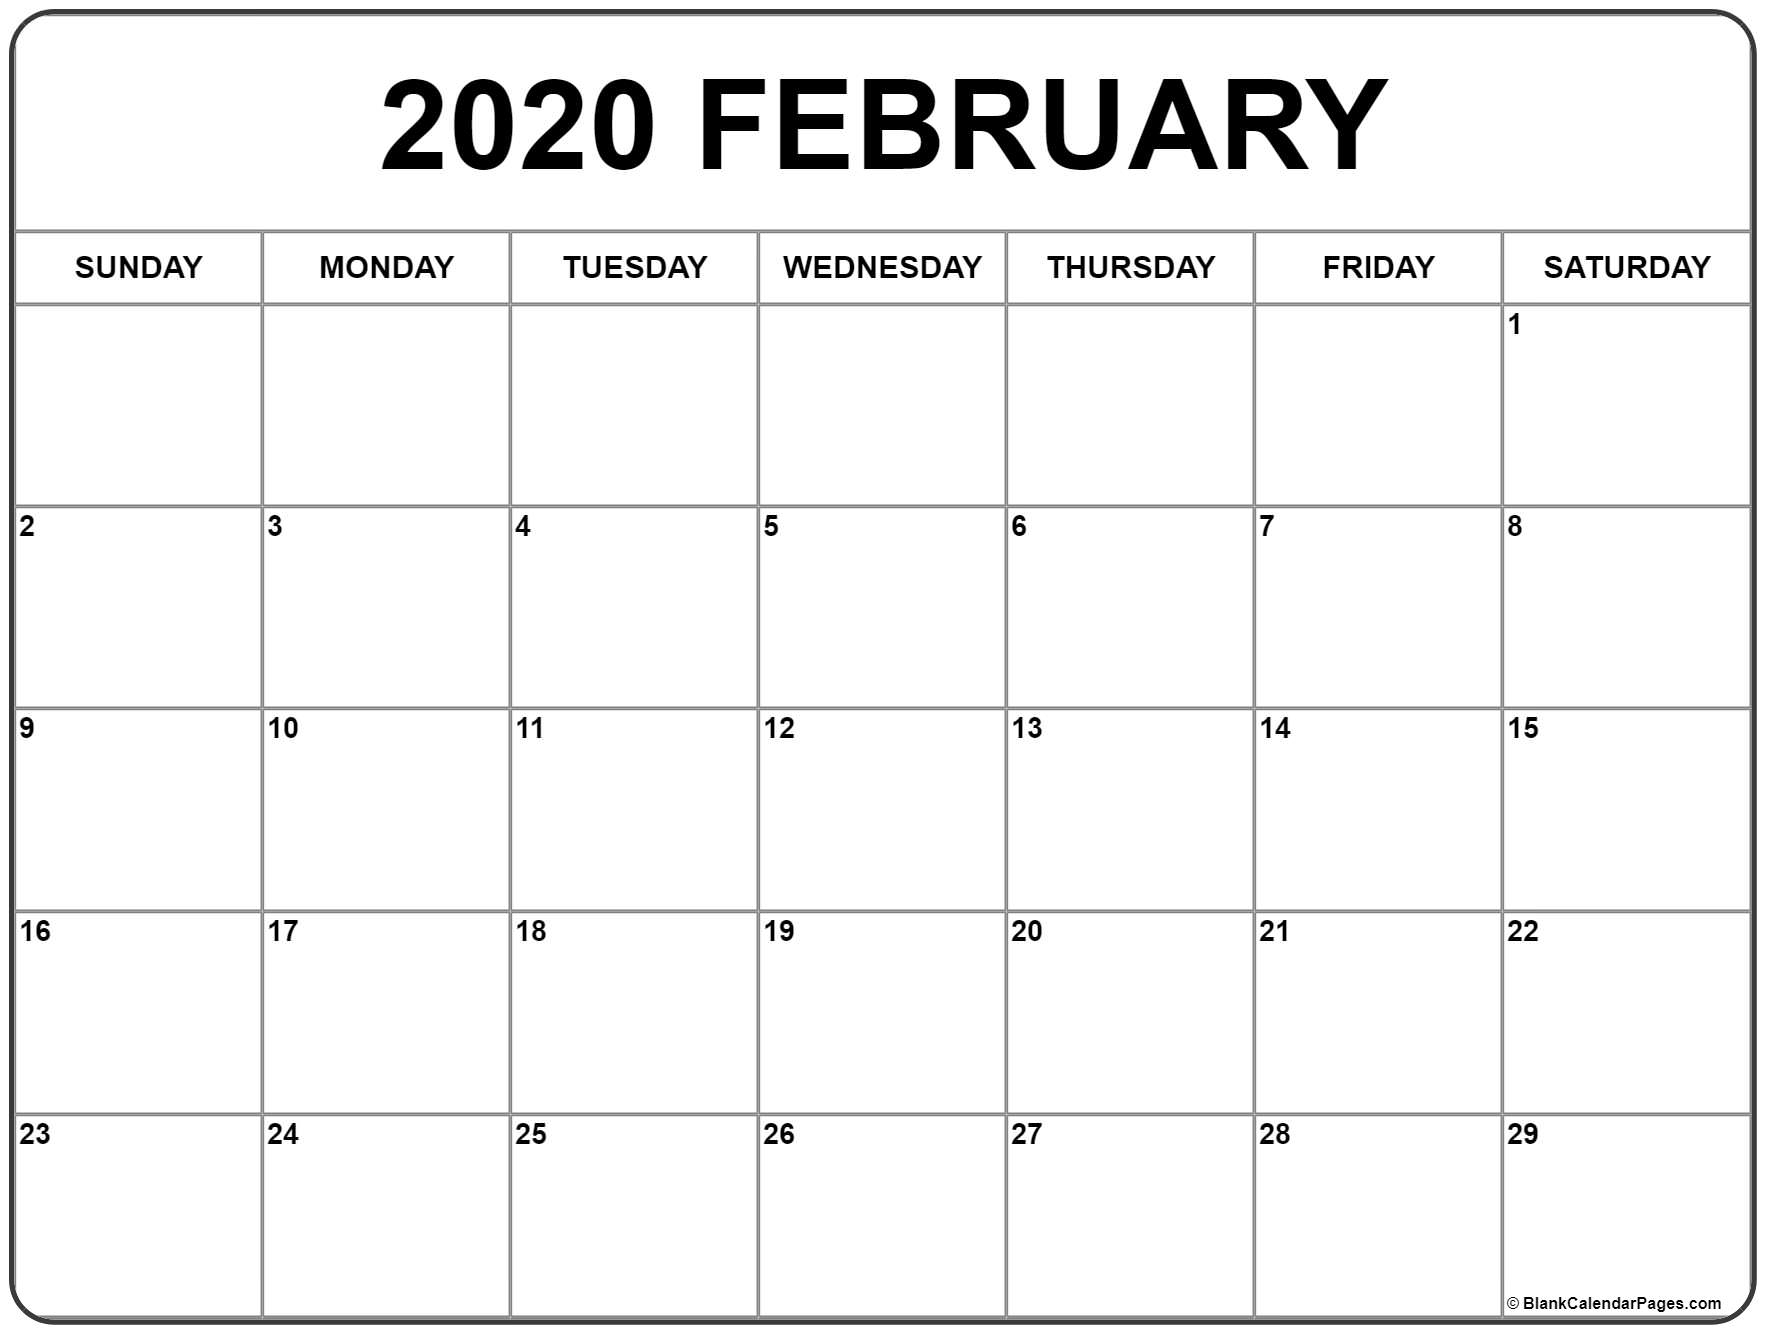 February 2020 Calendar | Free Printable Monthly Calendars throughout Free Printable Calander 2020 Victoria Wiht Spaces To Write